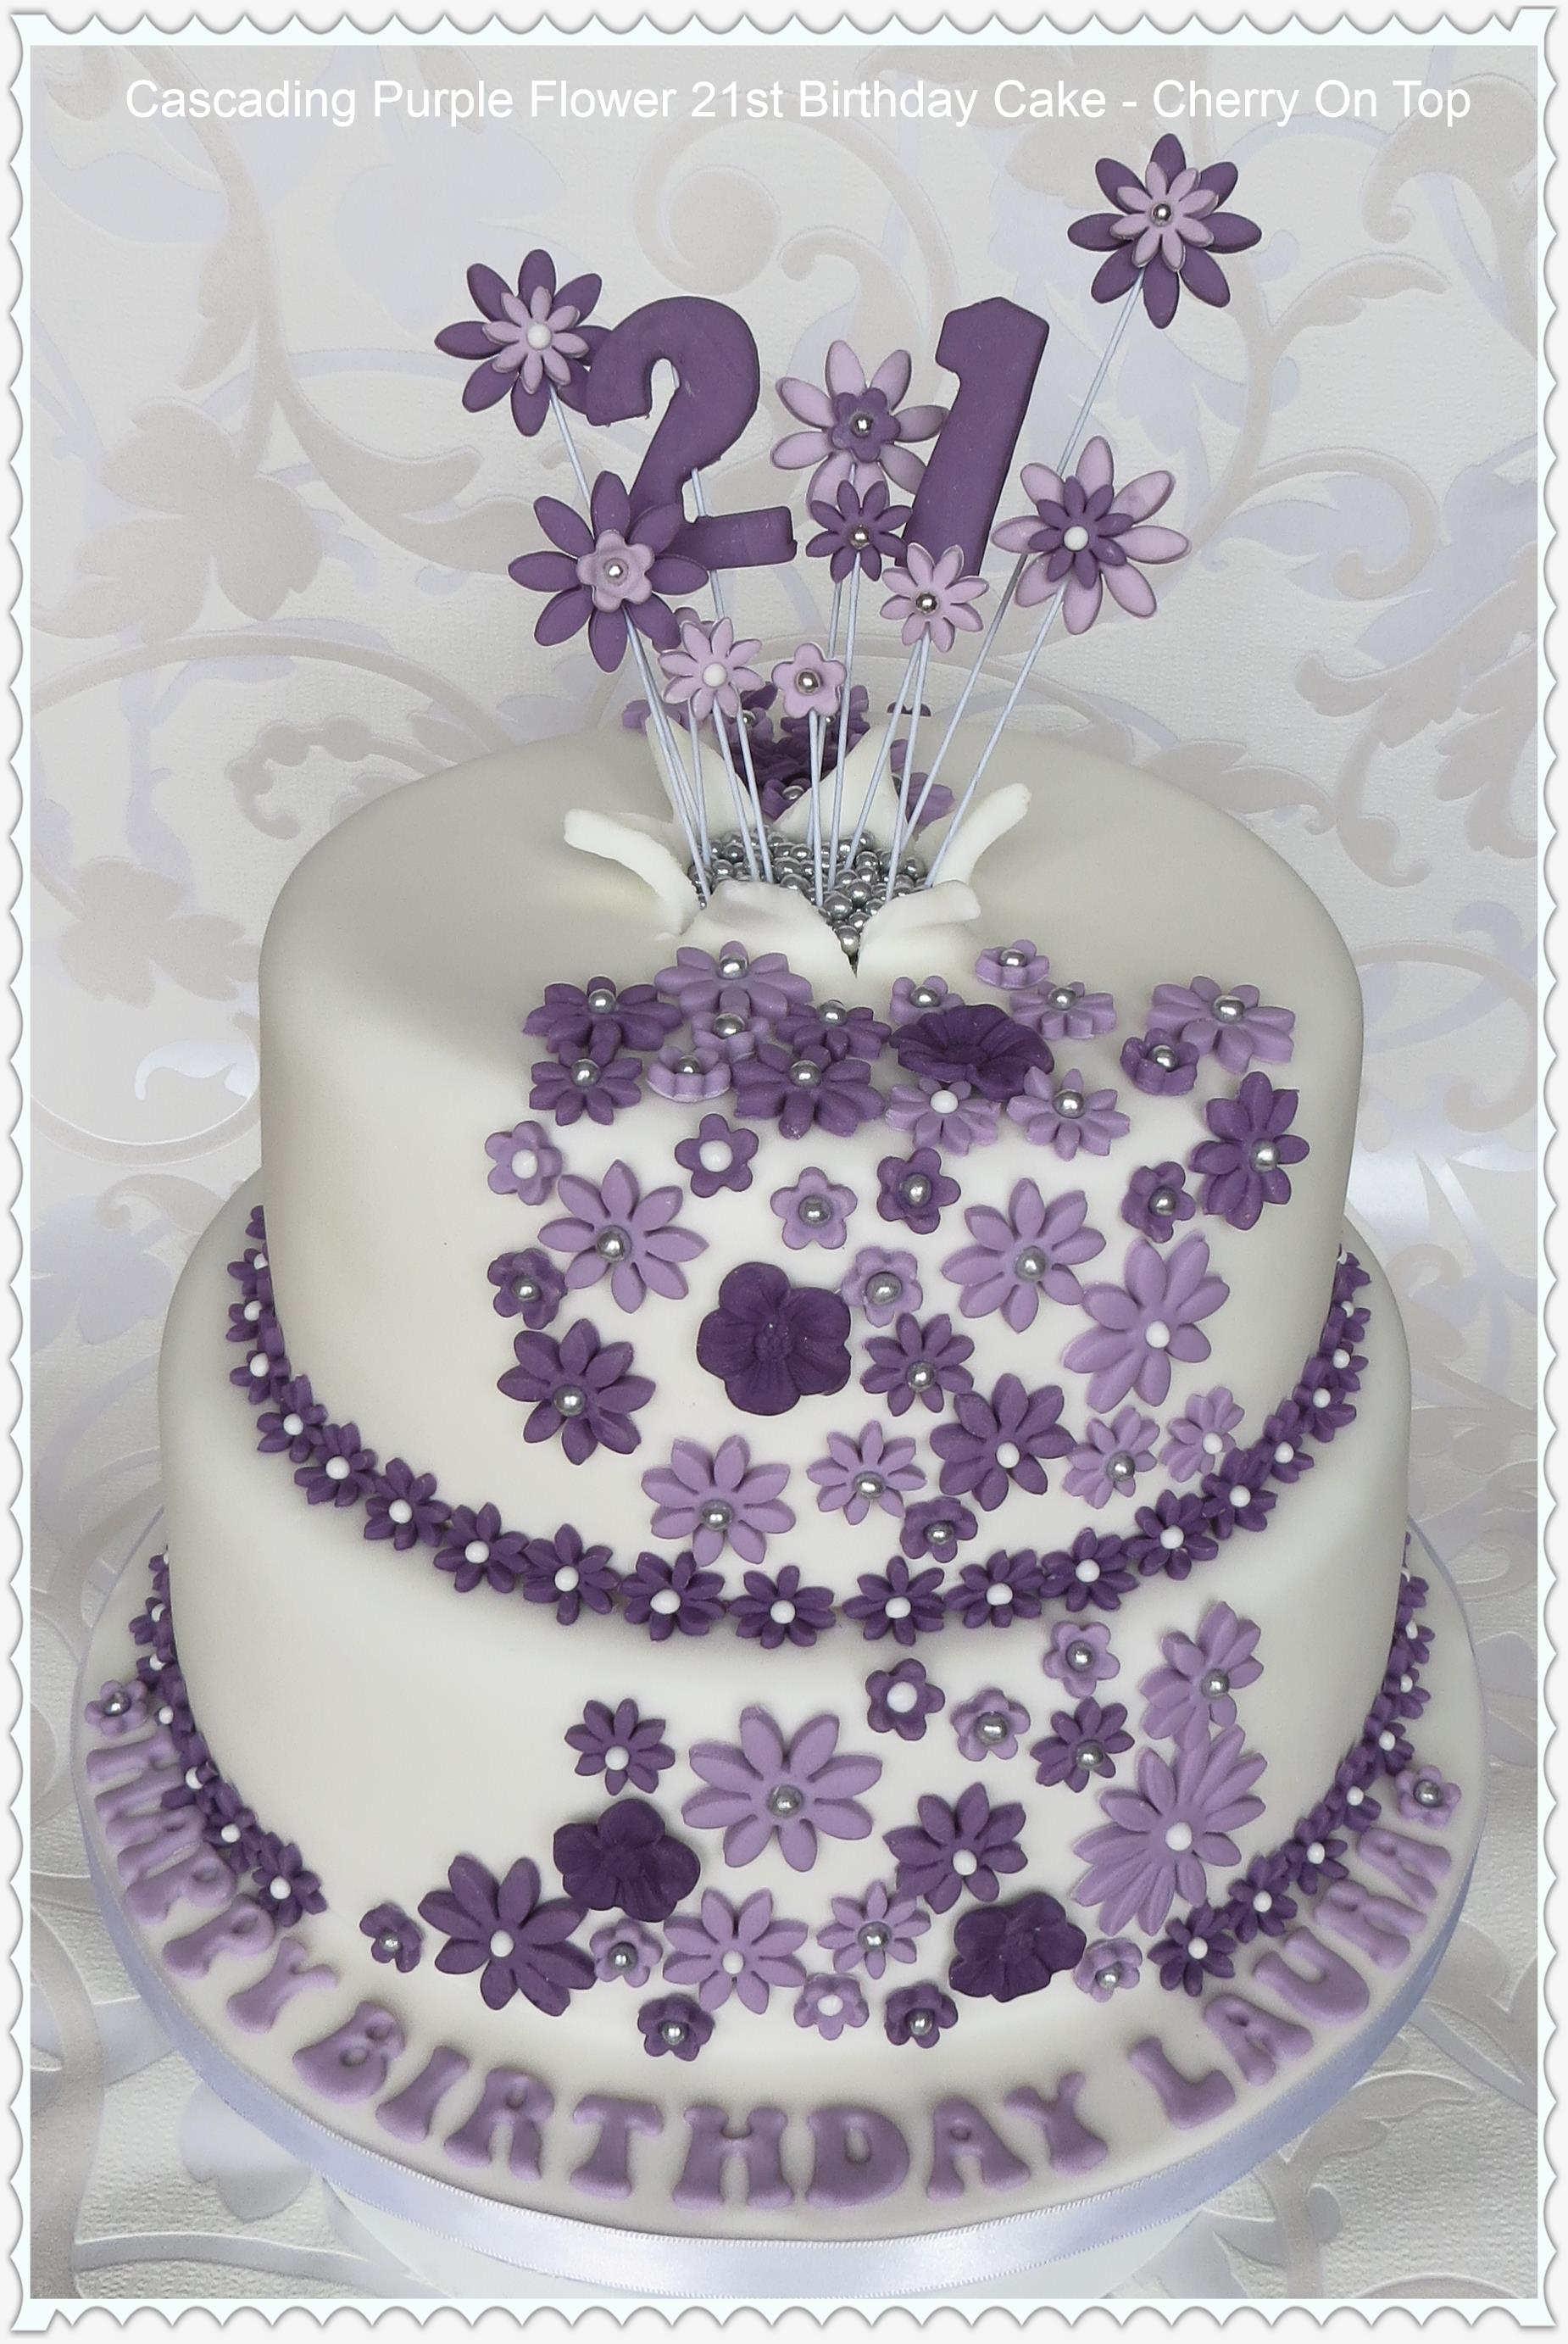 Tremendous 9 21St Birthday Cakes Flowers Photo Purple Flower Birthday Cake Personalised Birthday Cards Arneslily Jamesorg